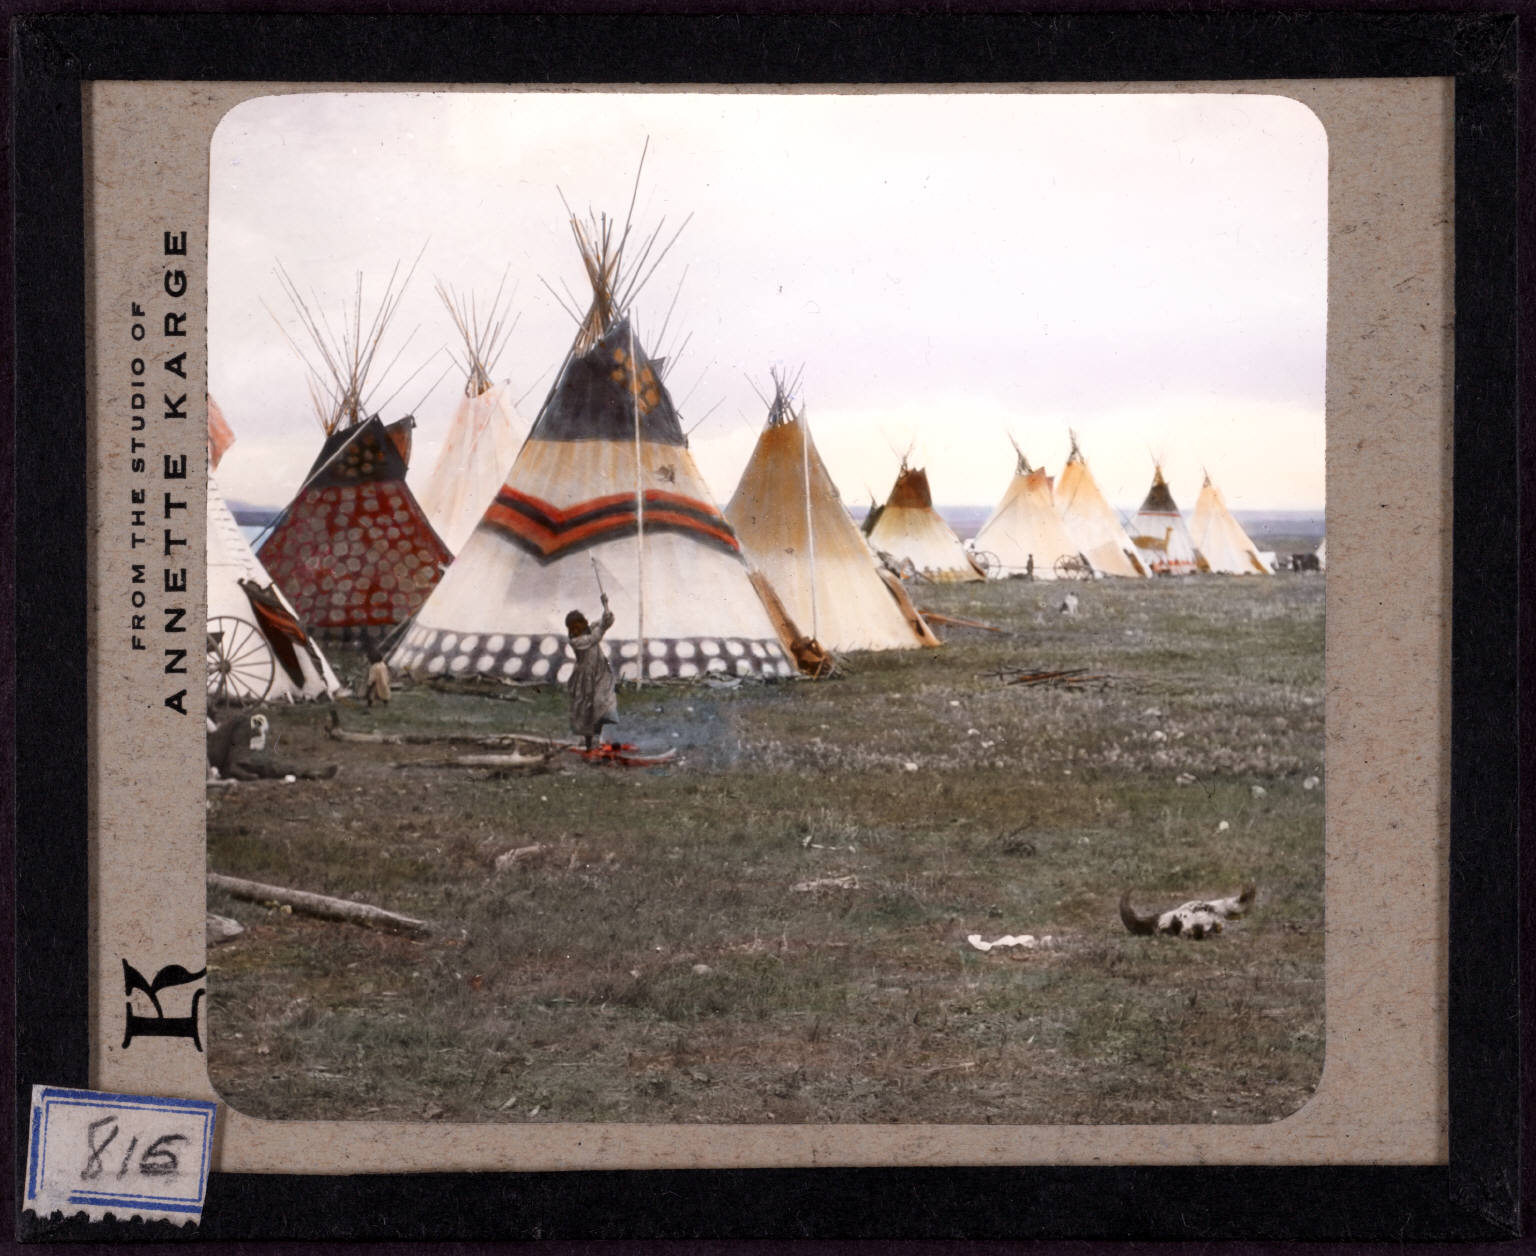 http://upload.wikimedia.org/wikipedia/commons/8/80/-Woman_chopping_firewood%2C_Eagle_tipi_in_foreground%2C_Star_tipi_on_left-._815.jpg?uselang=ru